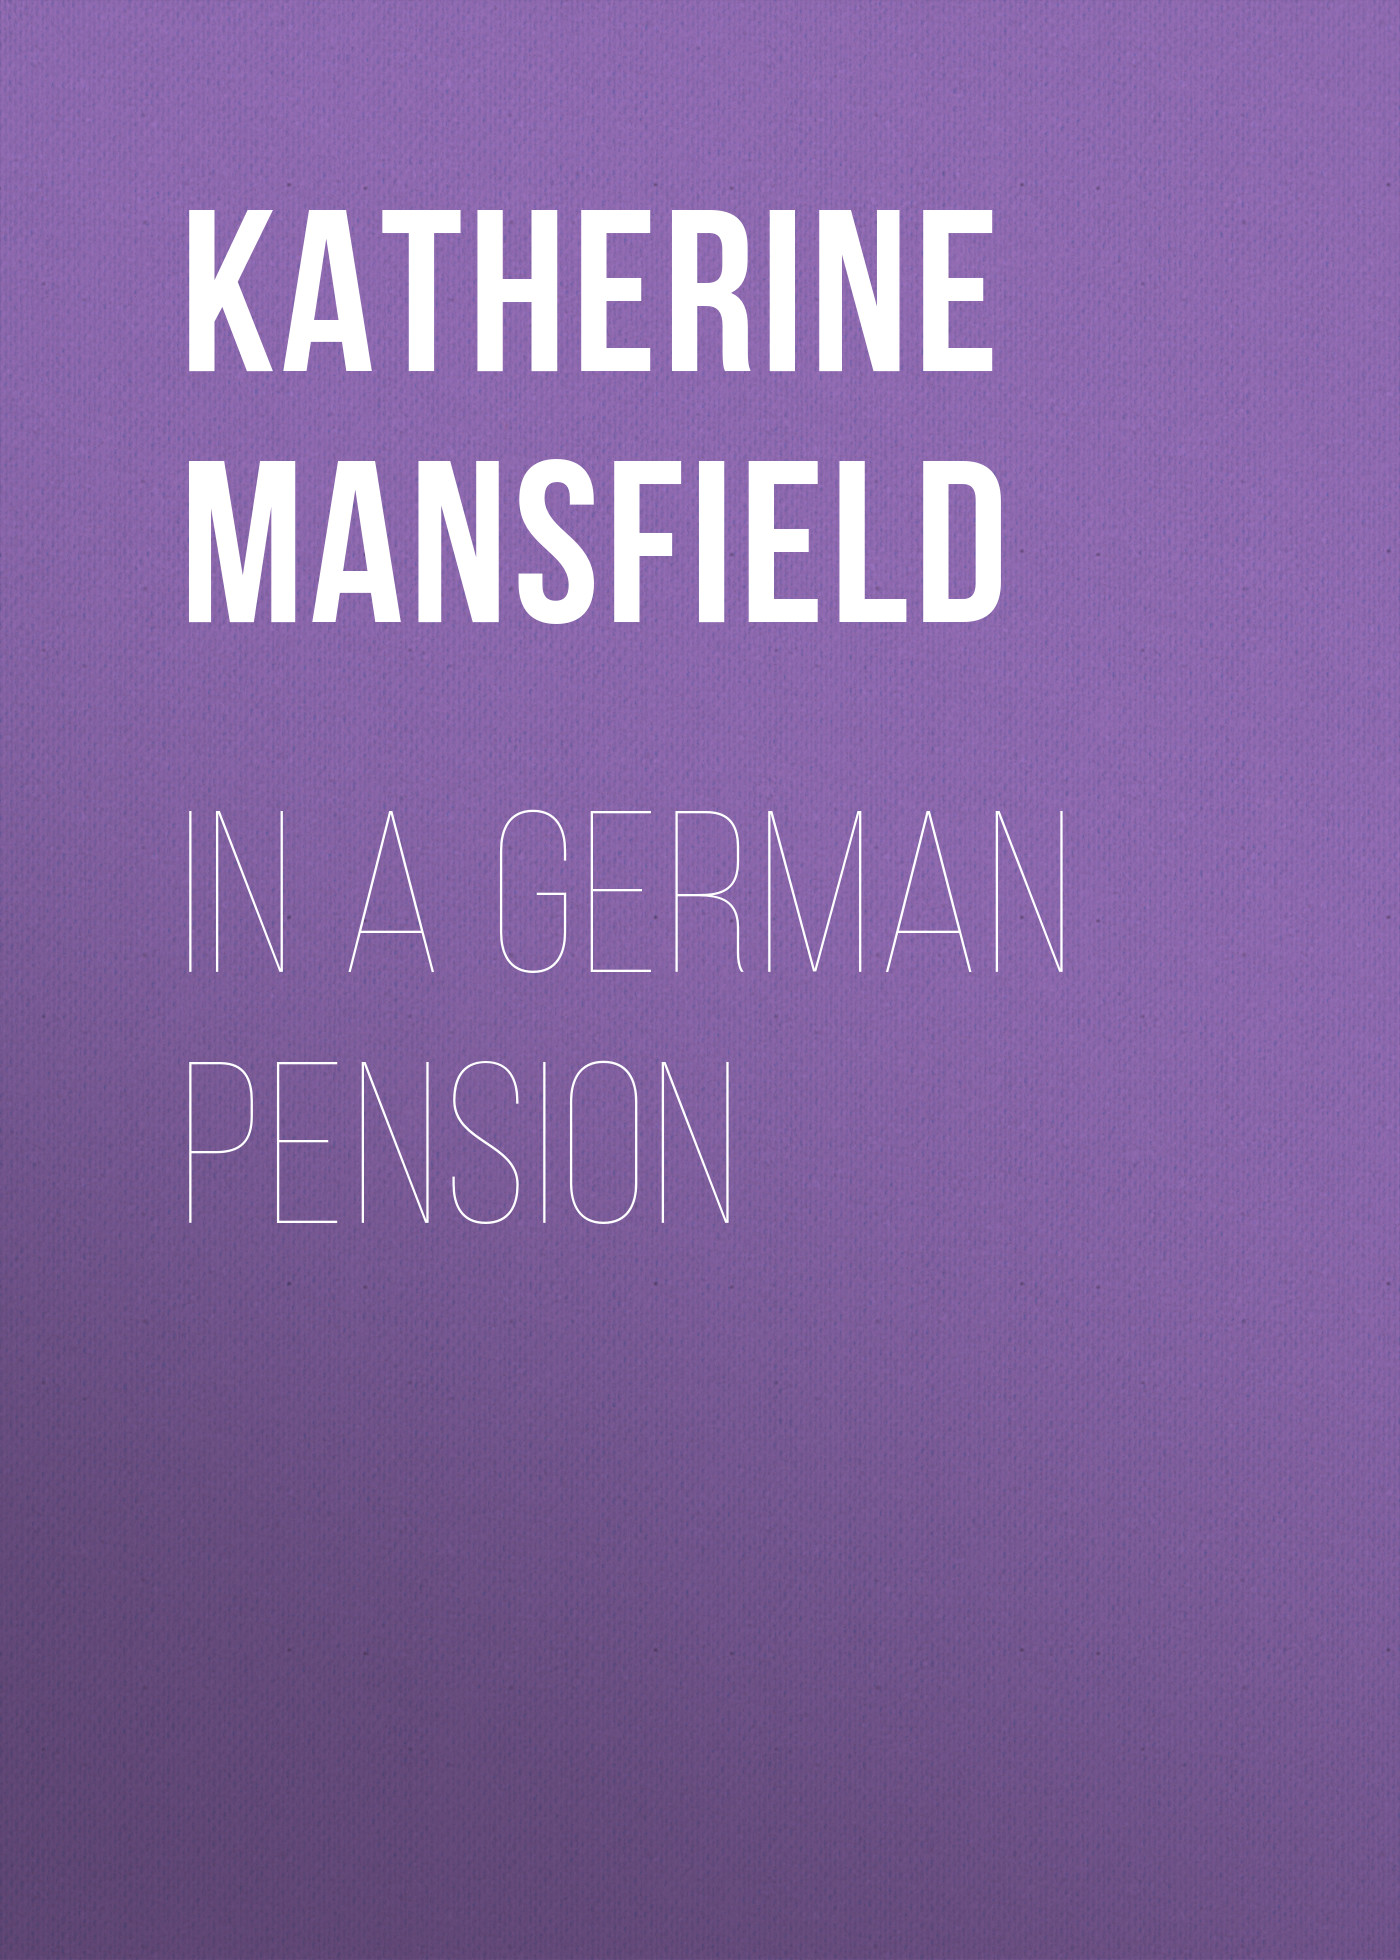 Katherine Mansfield In a German Pension